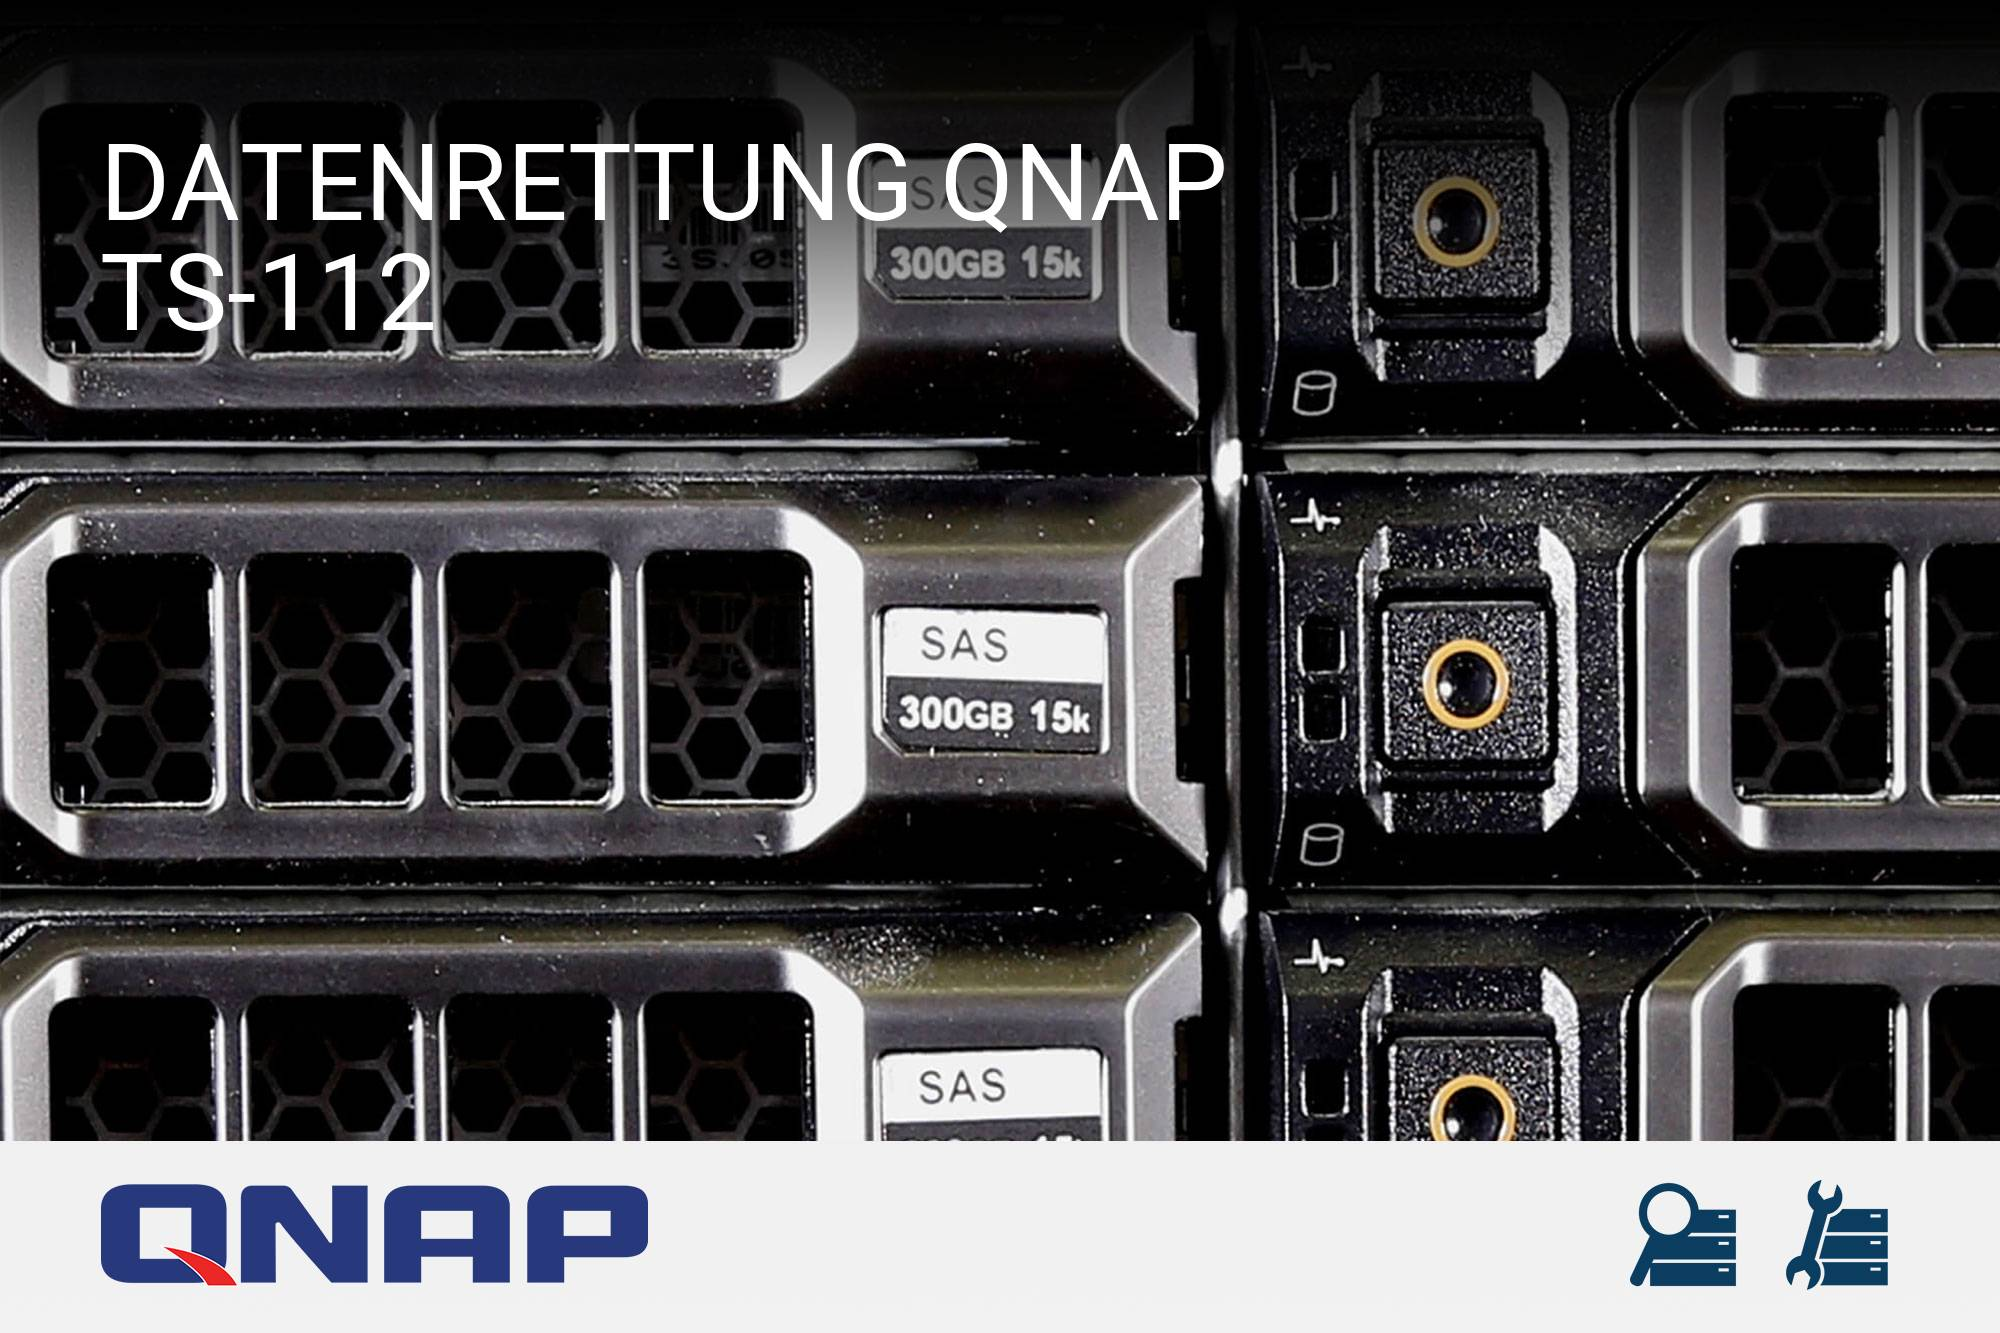 datenrettung qnap turbostation ts 112 server recovery. Black Bedroom Furniture Sets. Home Design Ideas